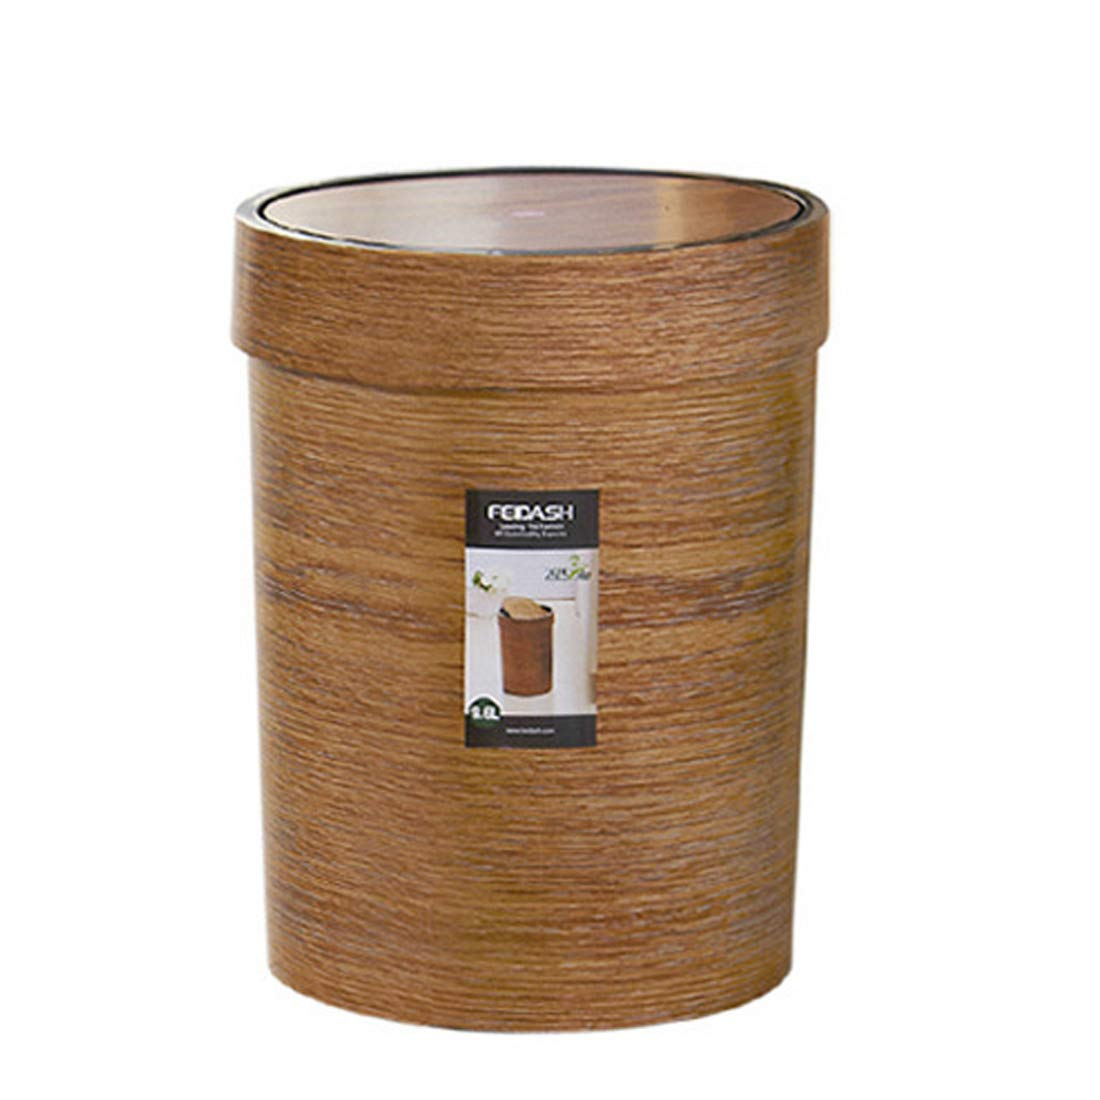 HMANE 10L Trash Can Swing Top,Plastic Retro Style Wood Grain Waste Basket Swing-lid Garbage Bin